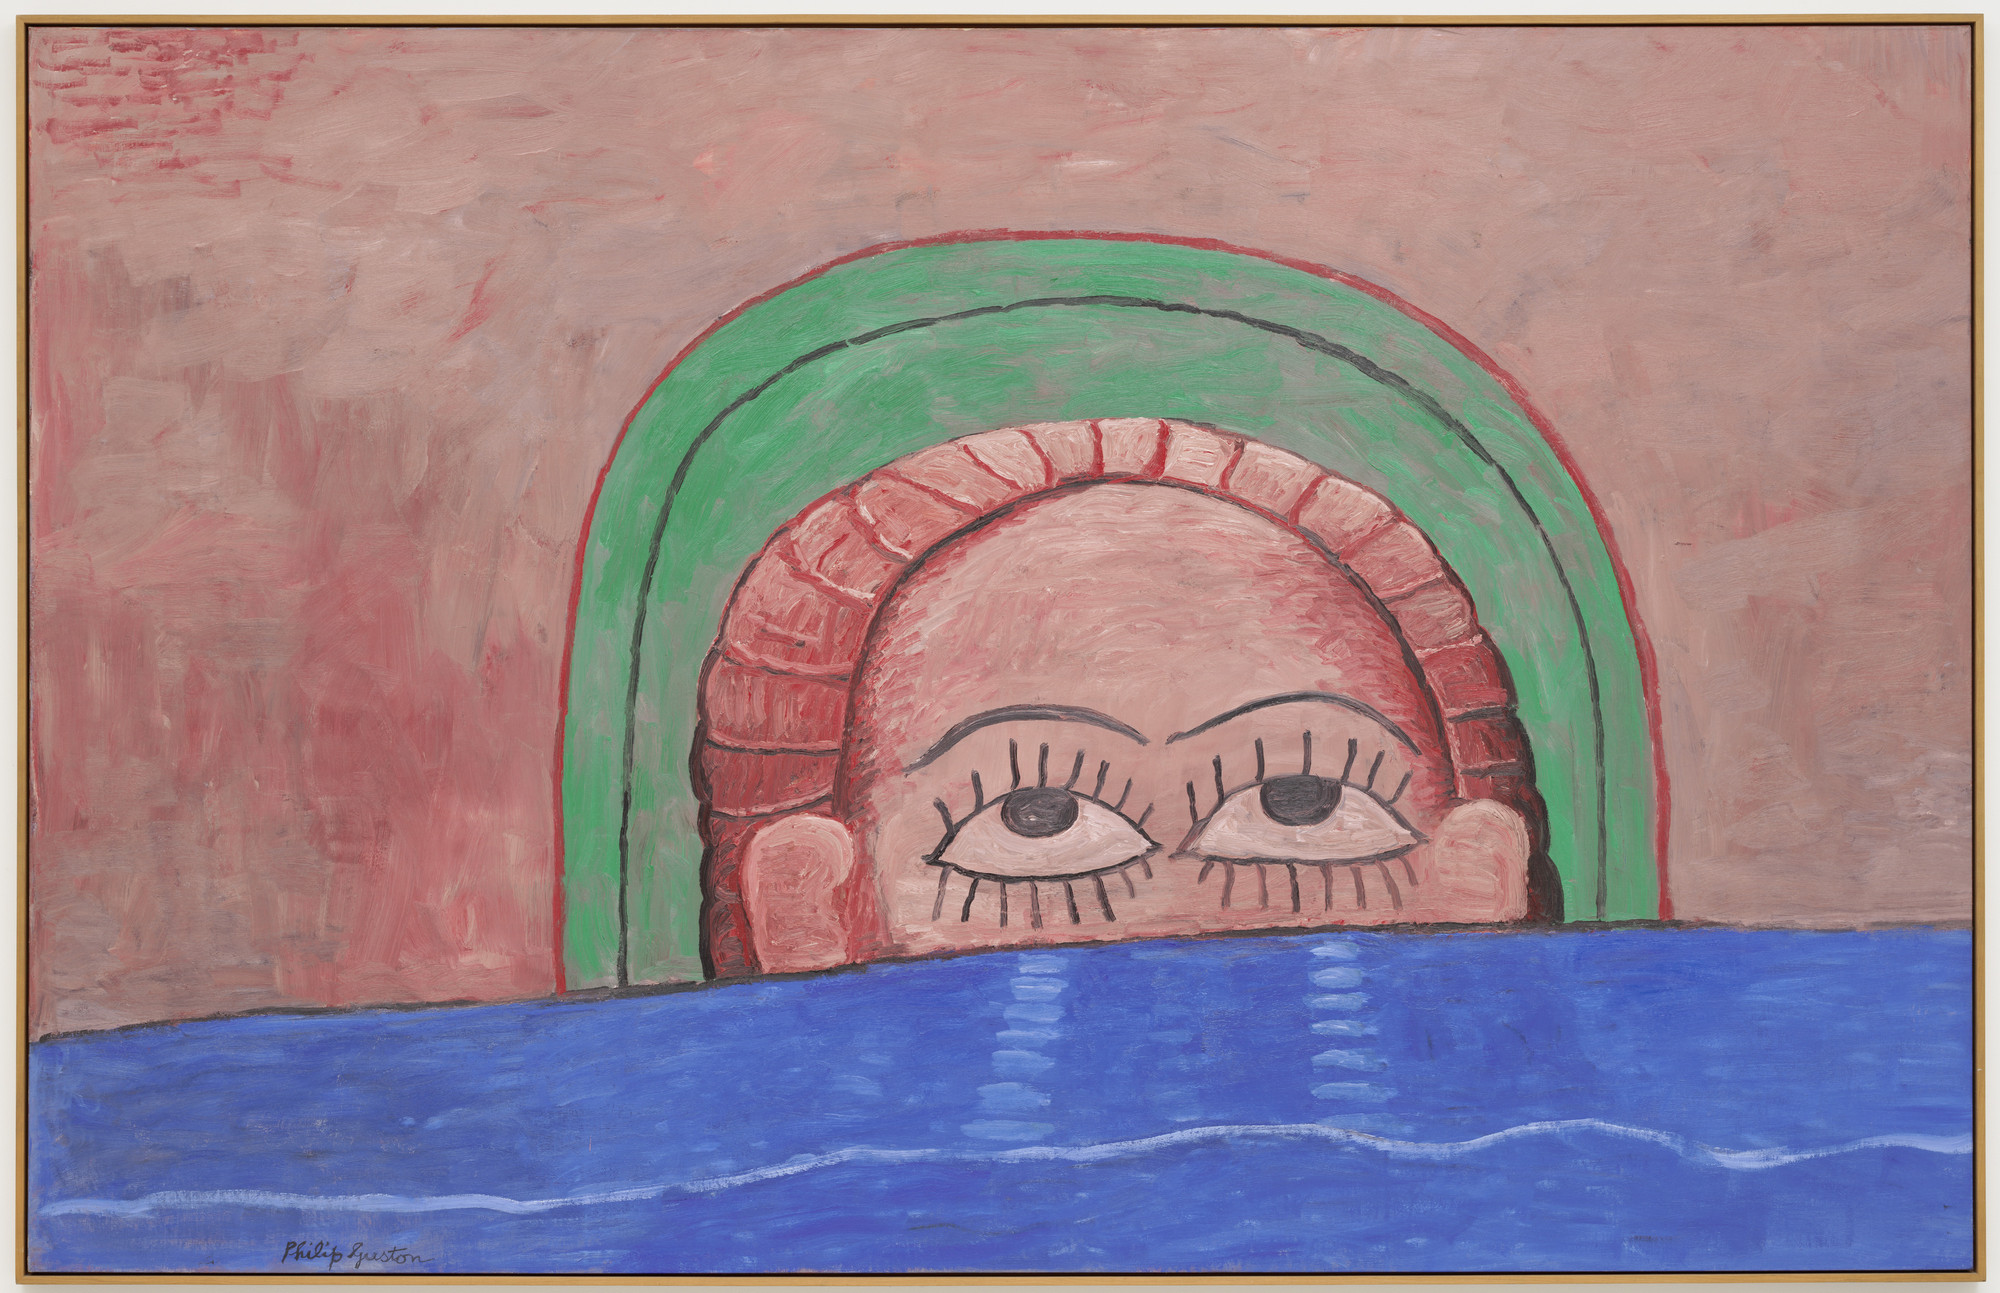 Philip Guston. Source. 1976